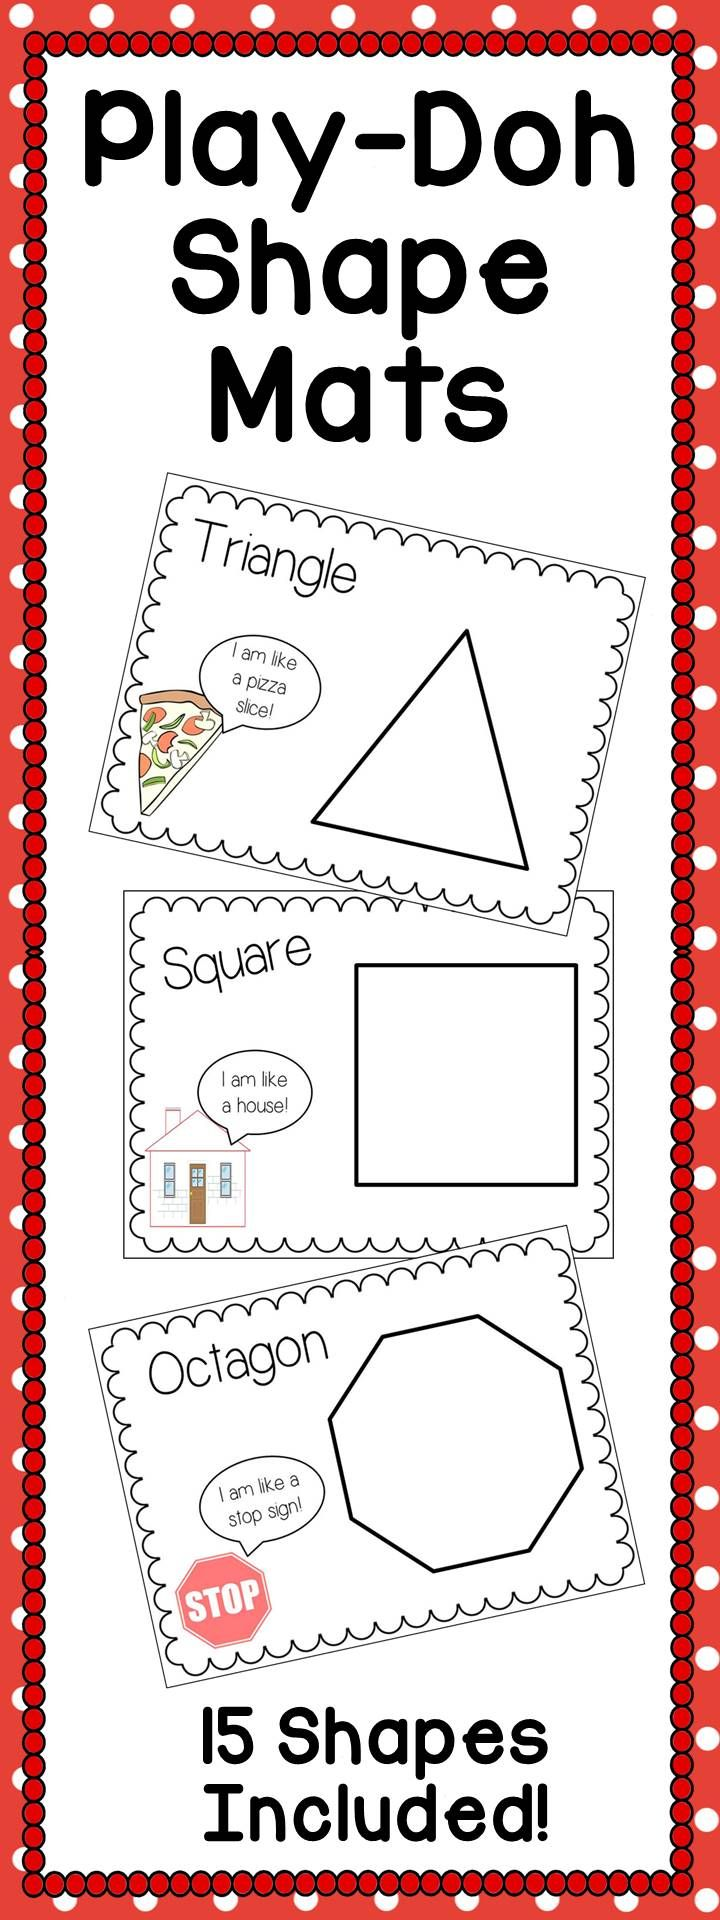 worksheet Kindergarten Shapes 1000 ideas about kindergarten shapes on pinterest literacy centers for 3rd 4th 5th and 6th grade november shapespreschool